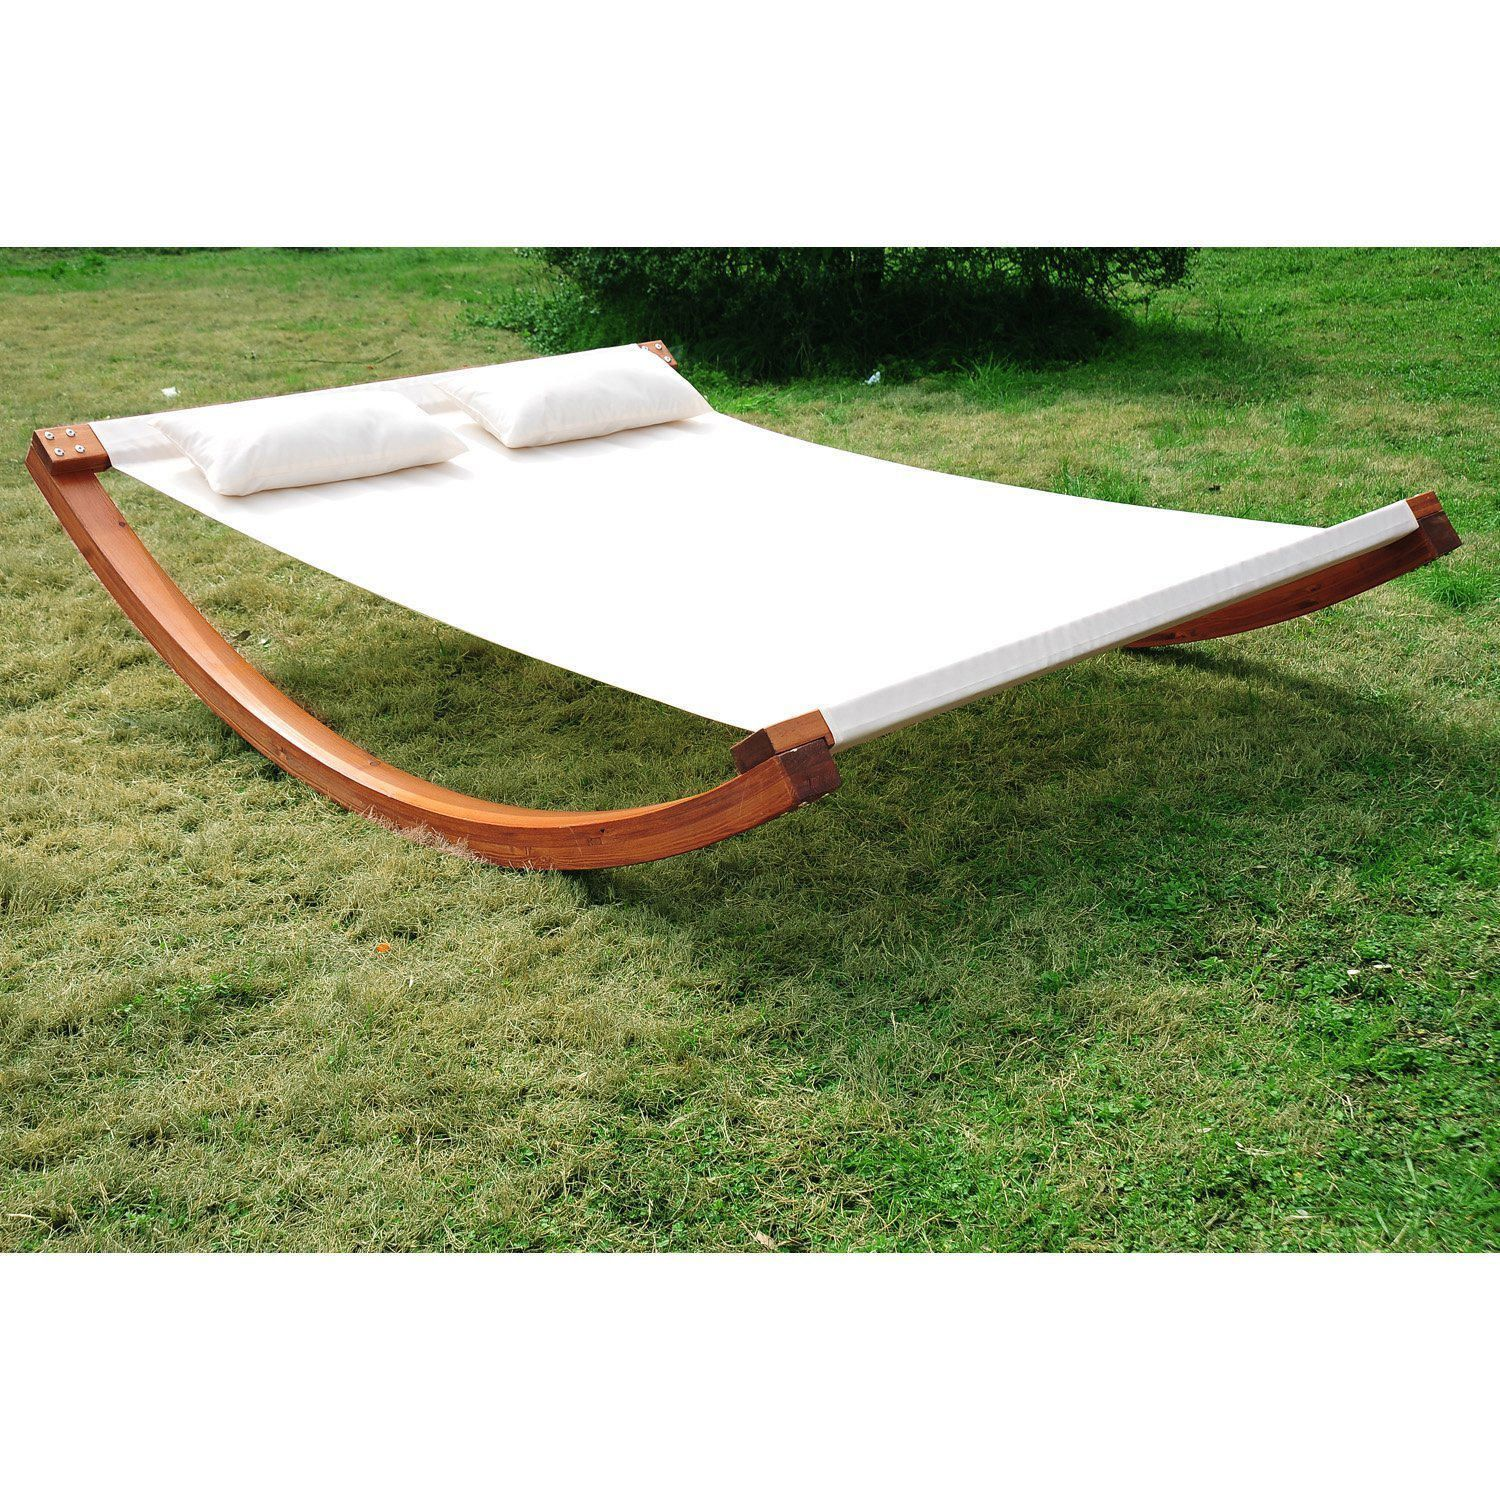 Pin by Heath on Wood projects in 2020 Sun lounger